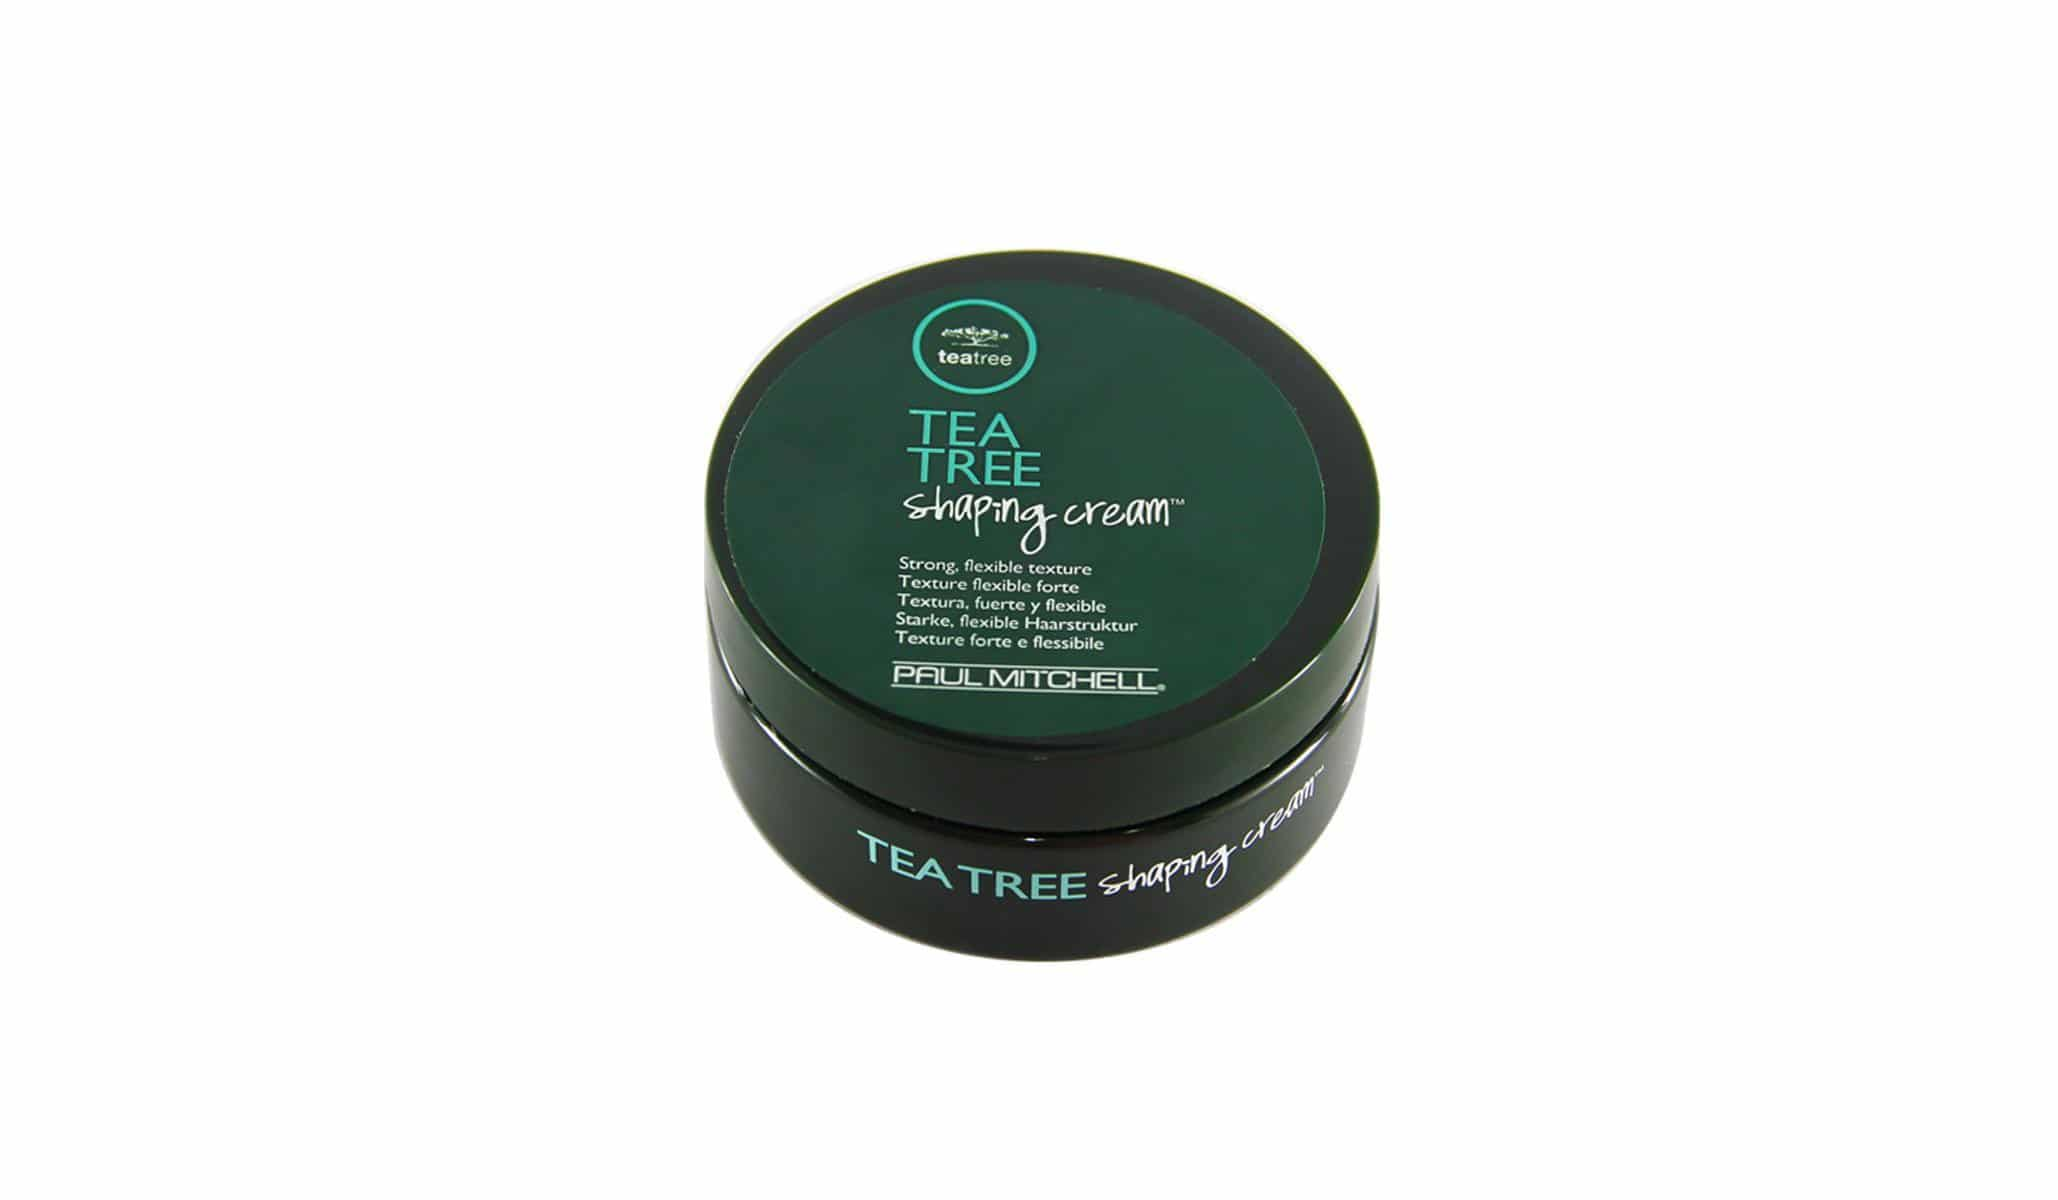 cera-paul-mitchell-tea-tree-shaping-cream-85g-20502-MLB20192980748_112014-F copy